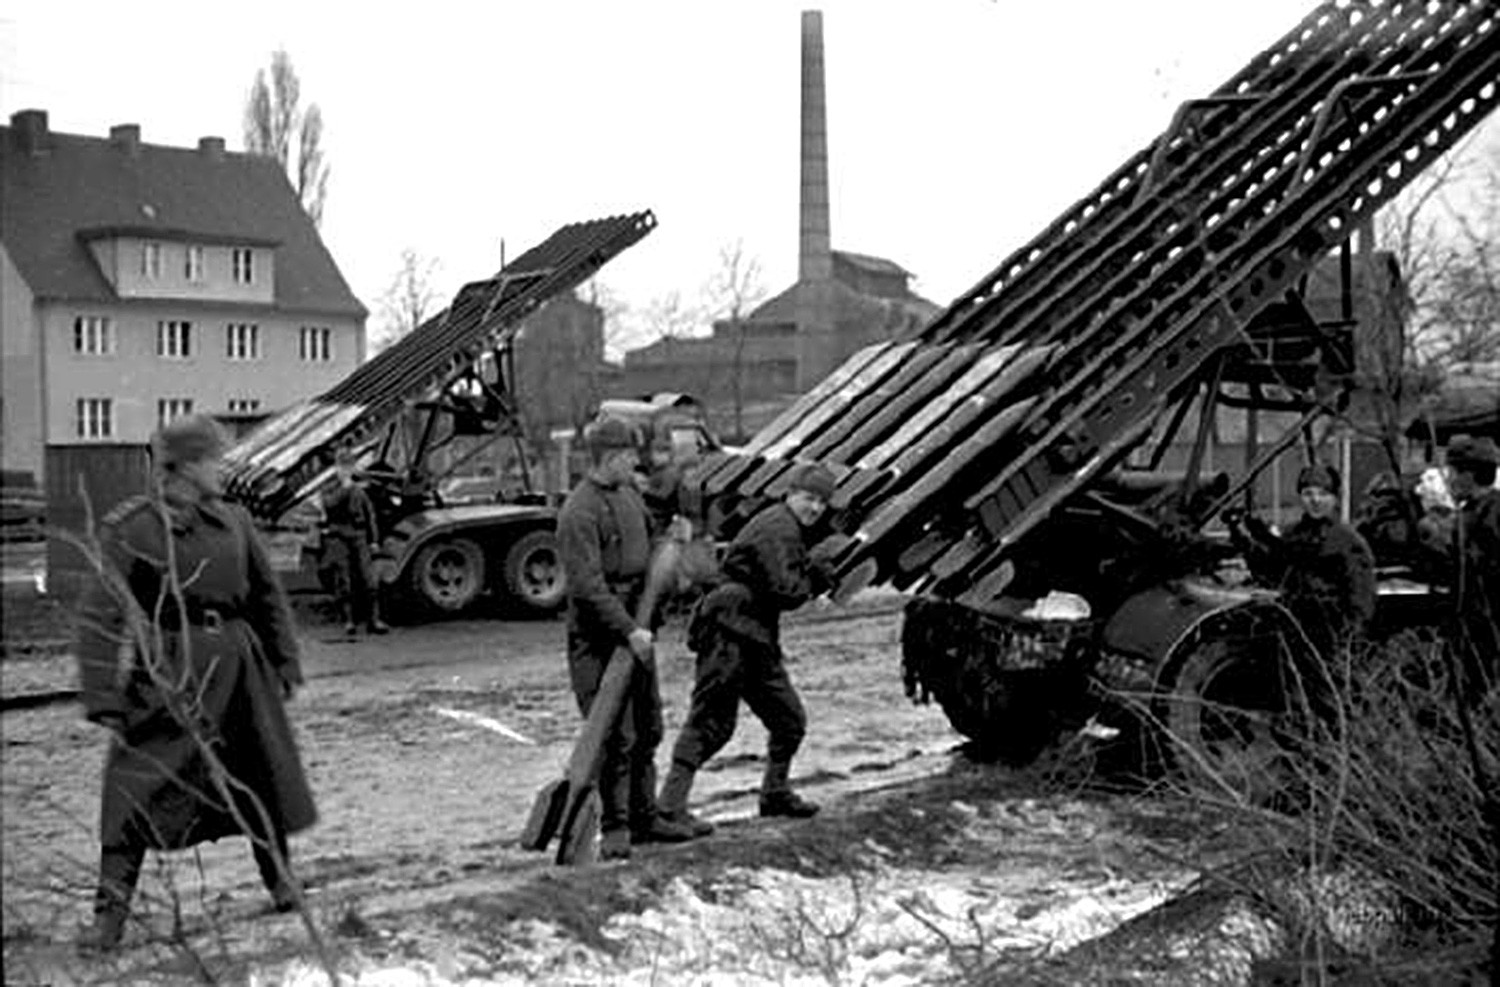 Fire power of Katyushas' salvo was comparable to that one of 70 heavy artillery guns combined